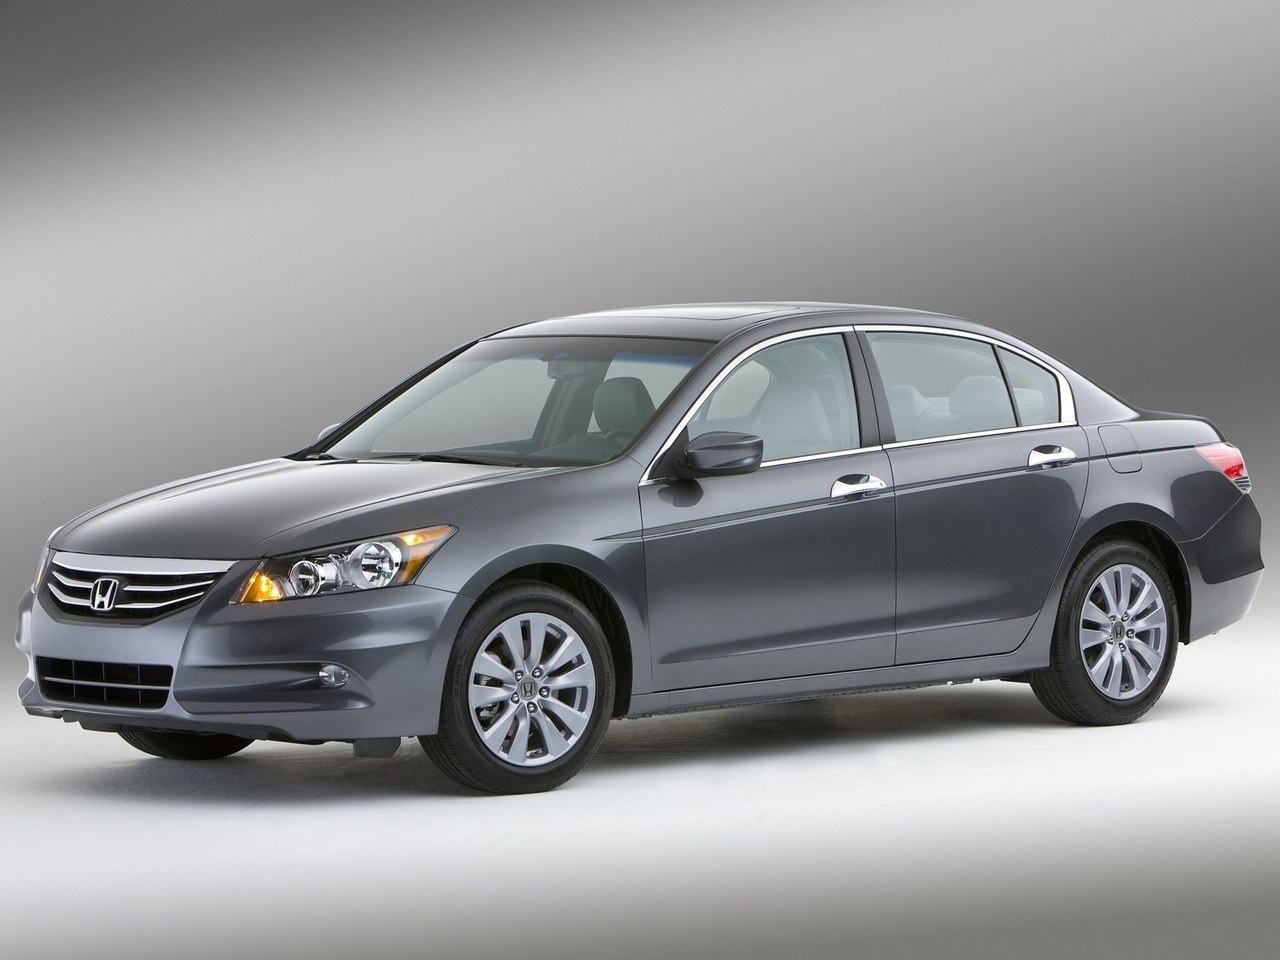 2011 Honda Accord  City Car Design Wallpapers For Android